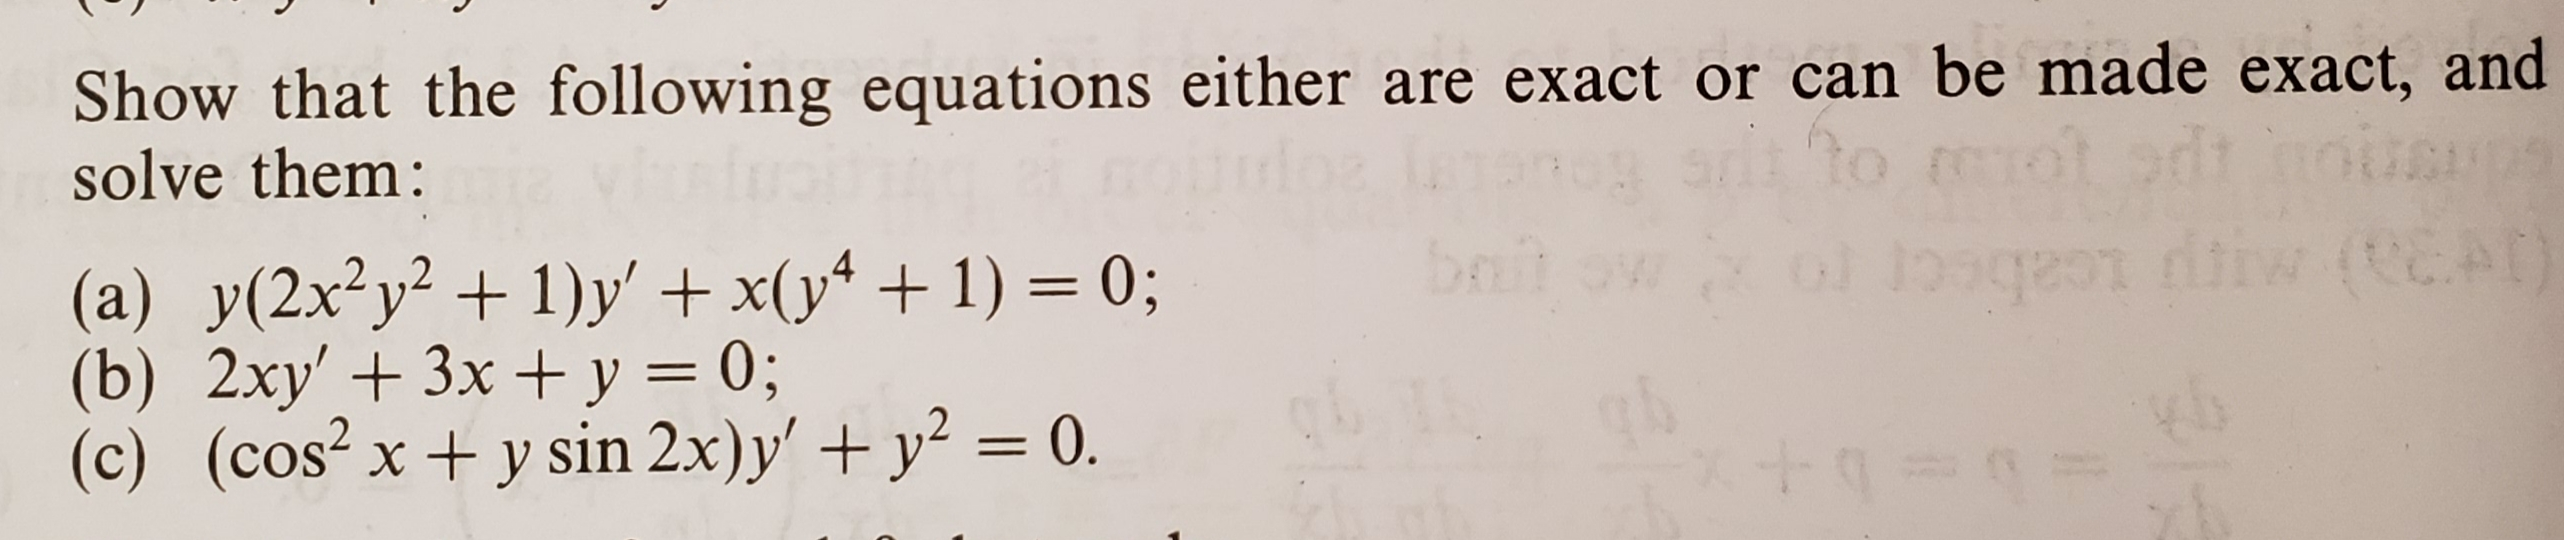 Show that the following equations either are exact or can be made exact, and solve them: 2,,2 (b) 2xy' 3x y 0; (c) (cos2x +y sin 2x)y'+y0 sin 2x) v'